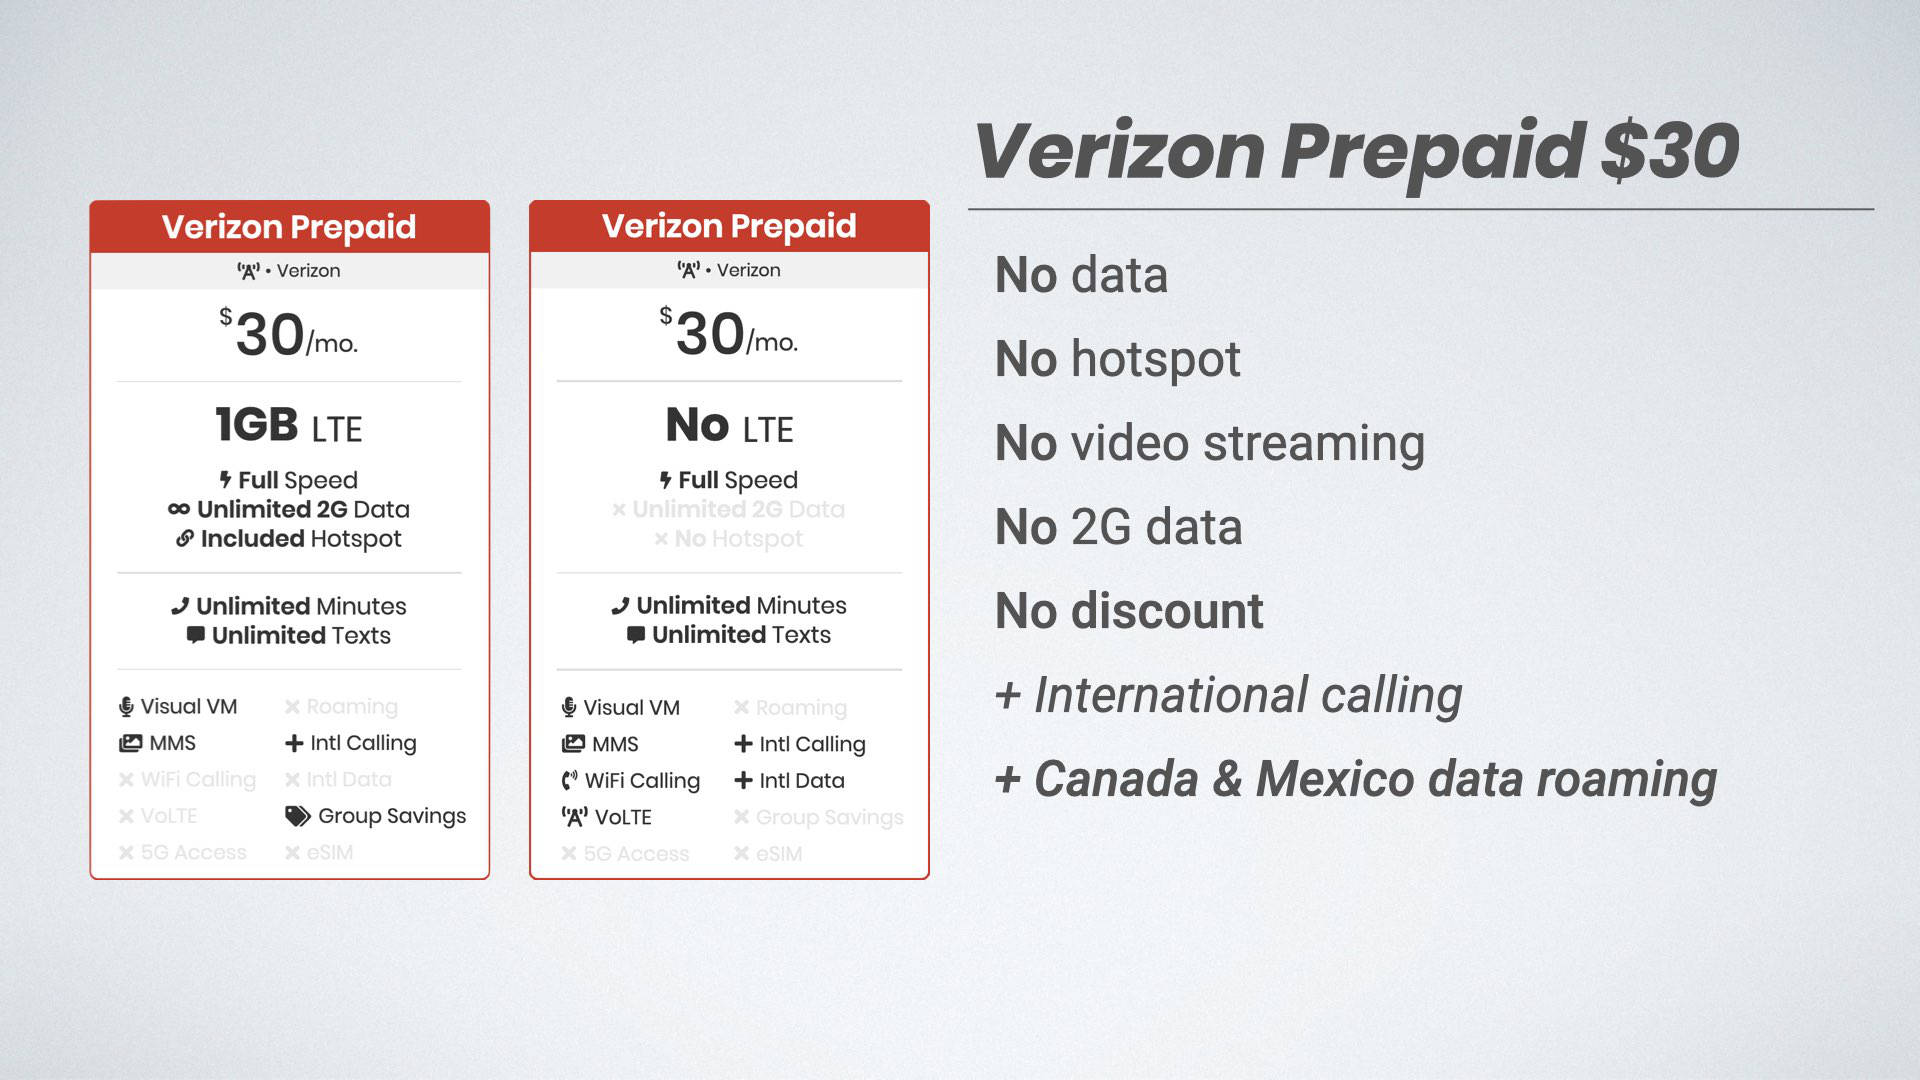 Verizon's $30 prepaid plan comparison